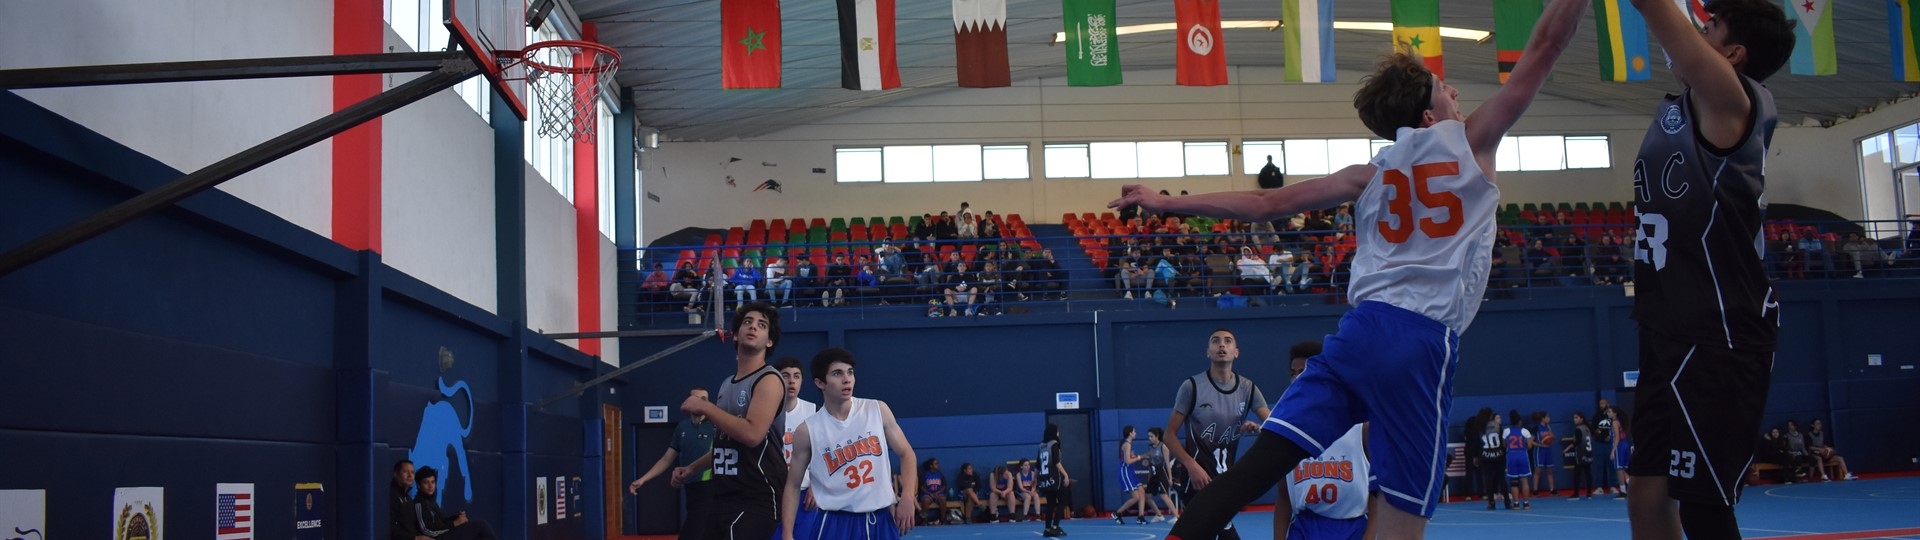 Basket ball at American academy casablanca